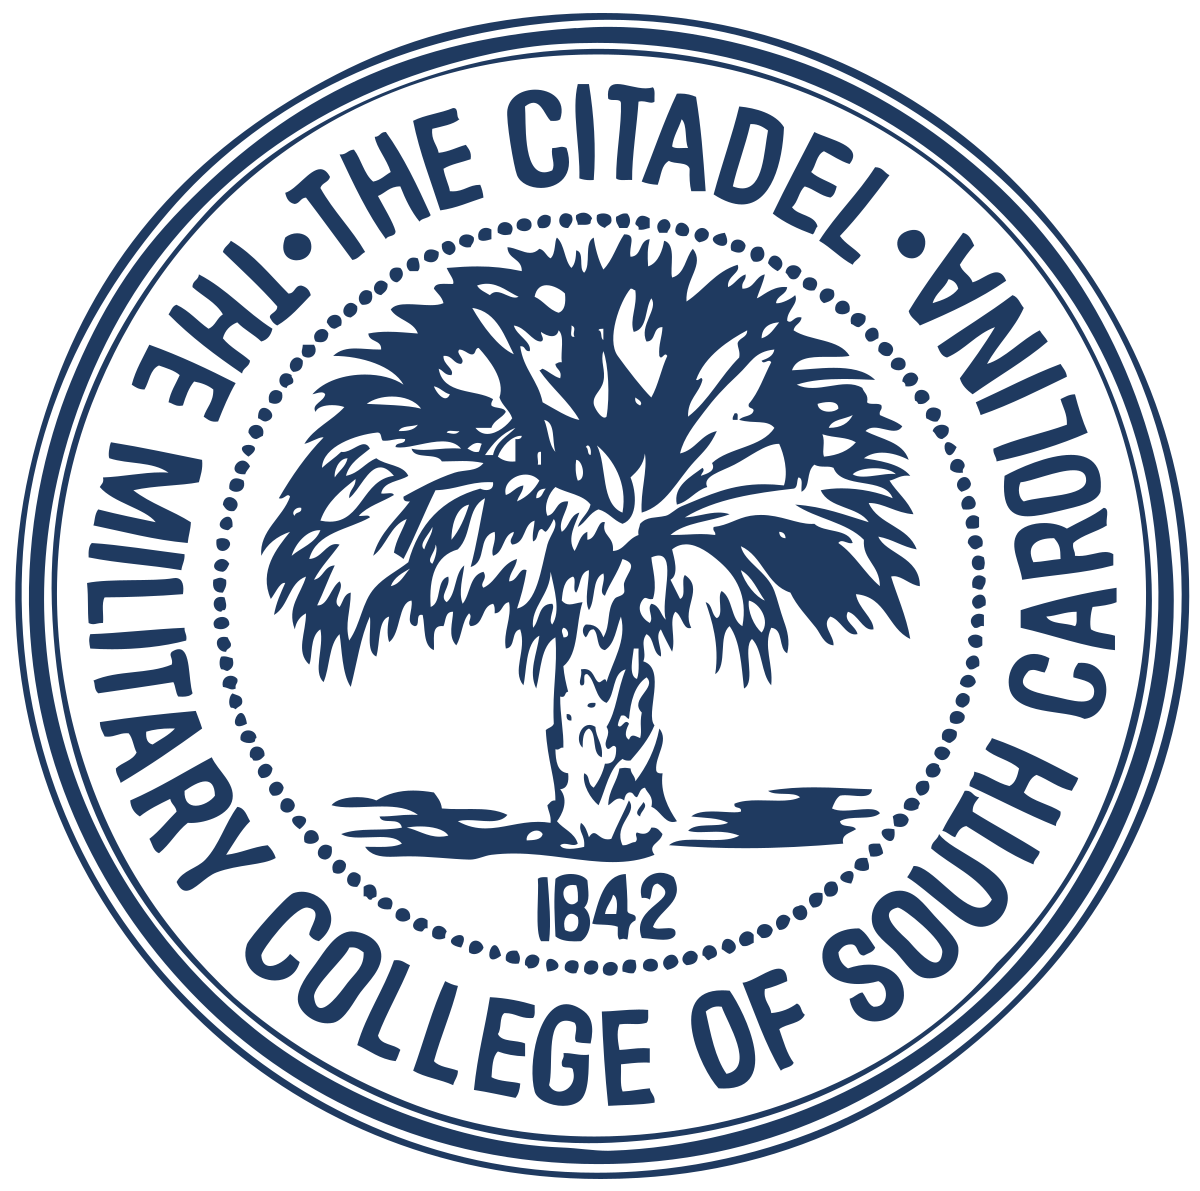 Citadel Military College of South Carolina – 40 Most Affordable Online Master's STEAM Teaching